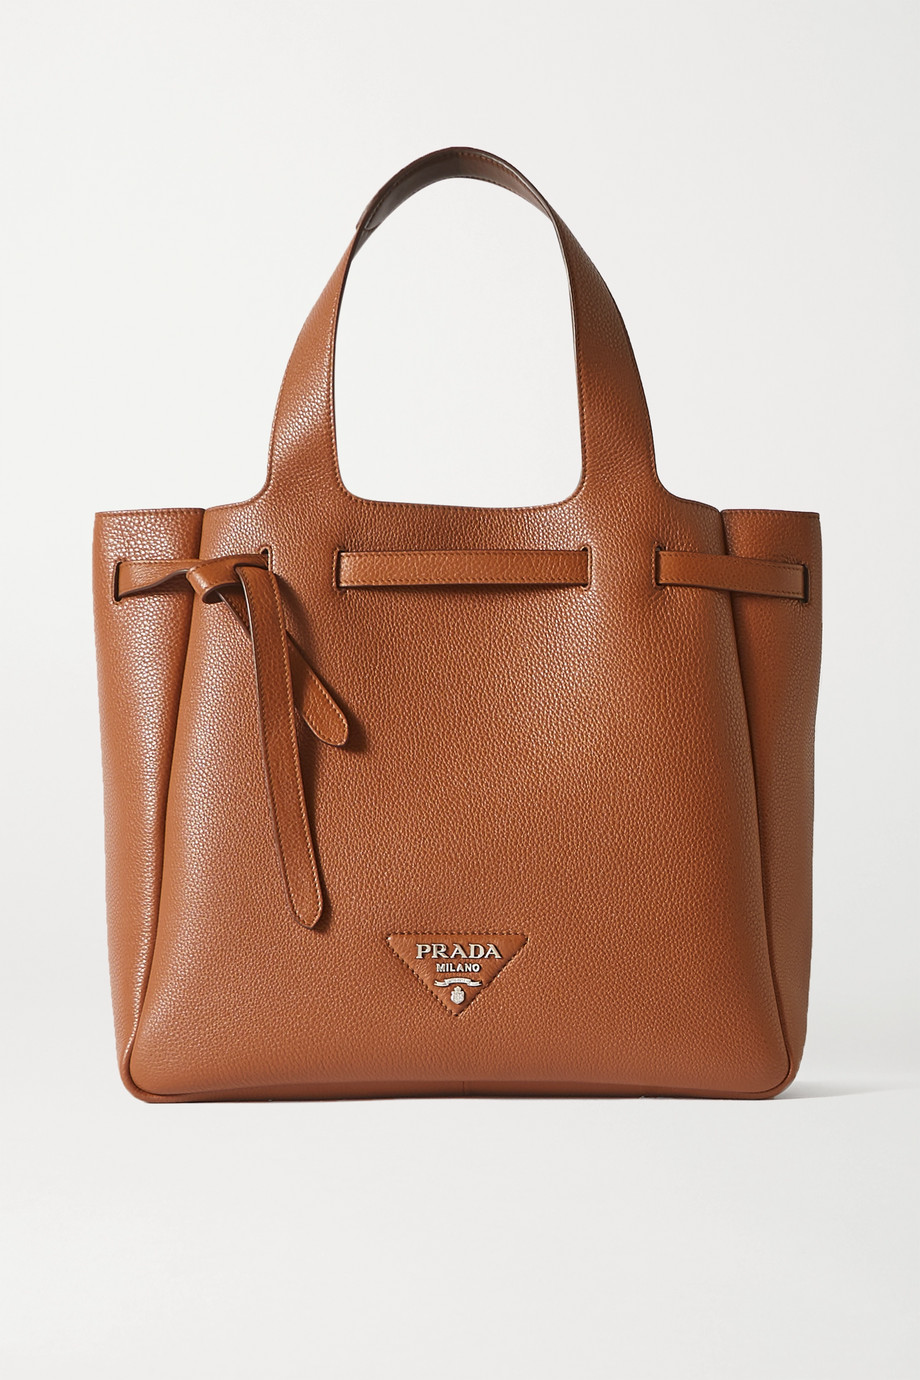 Prada Diano large textured-leather tote